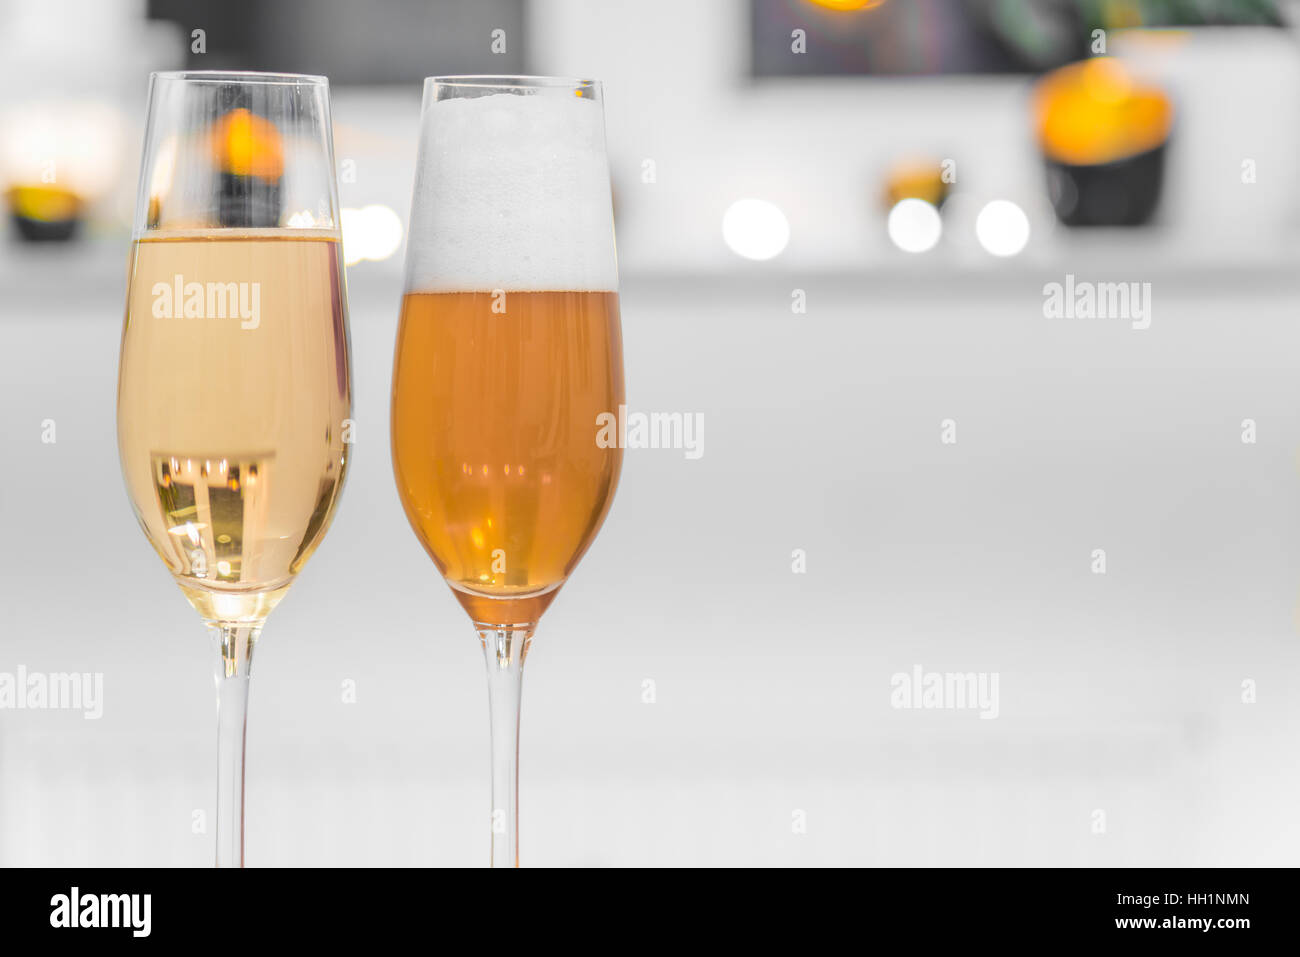 Closeup of two glasses filled with champagne and beer - Stock Image